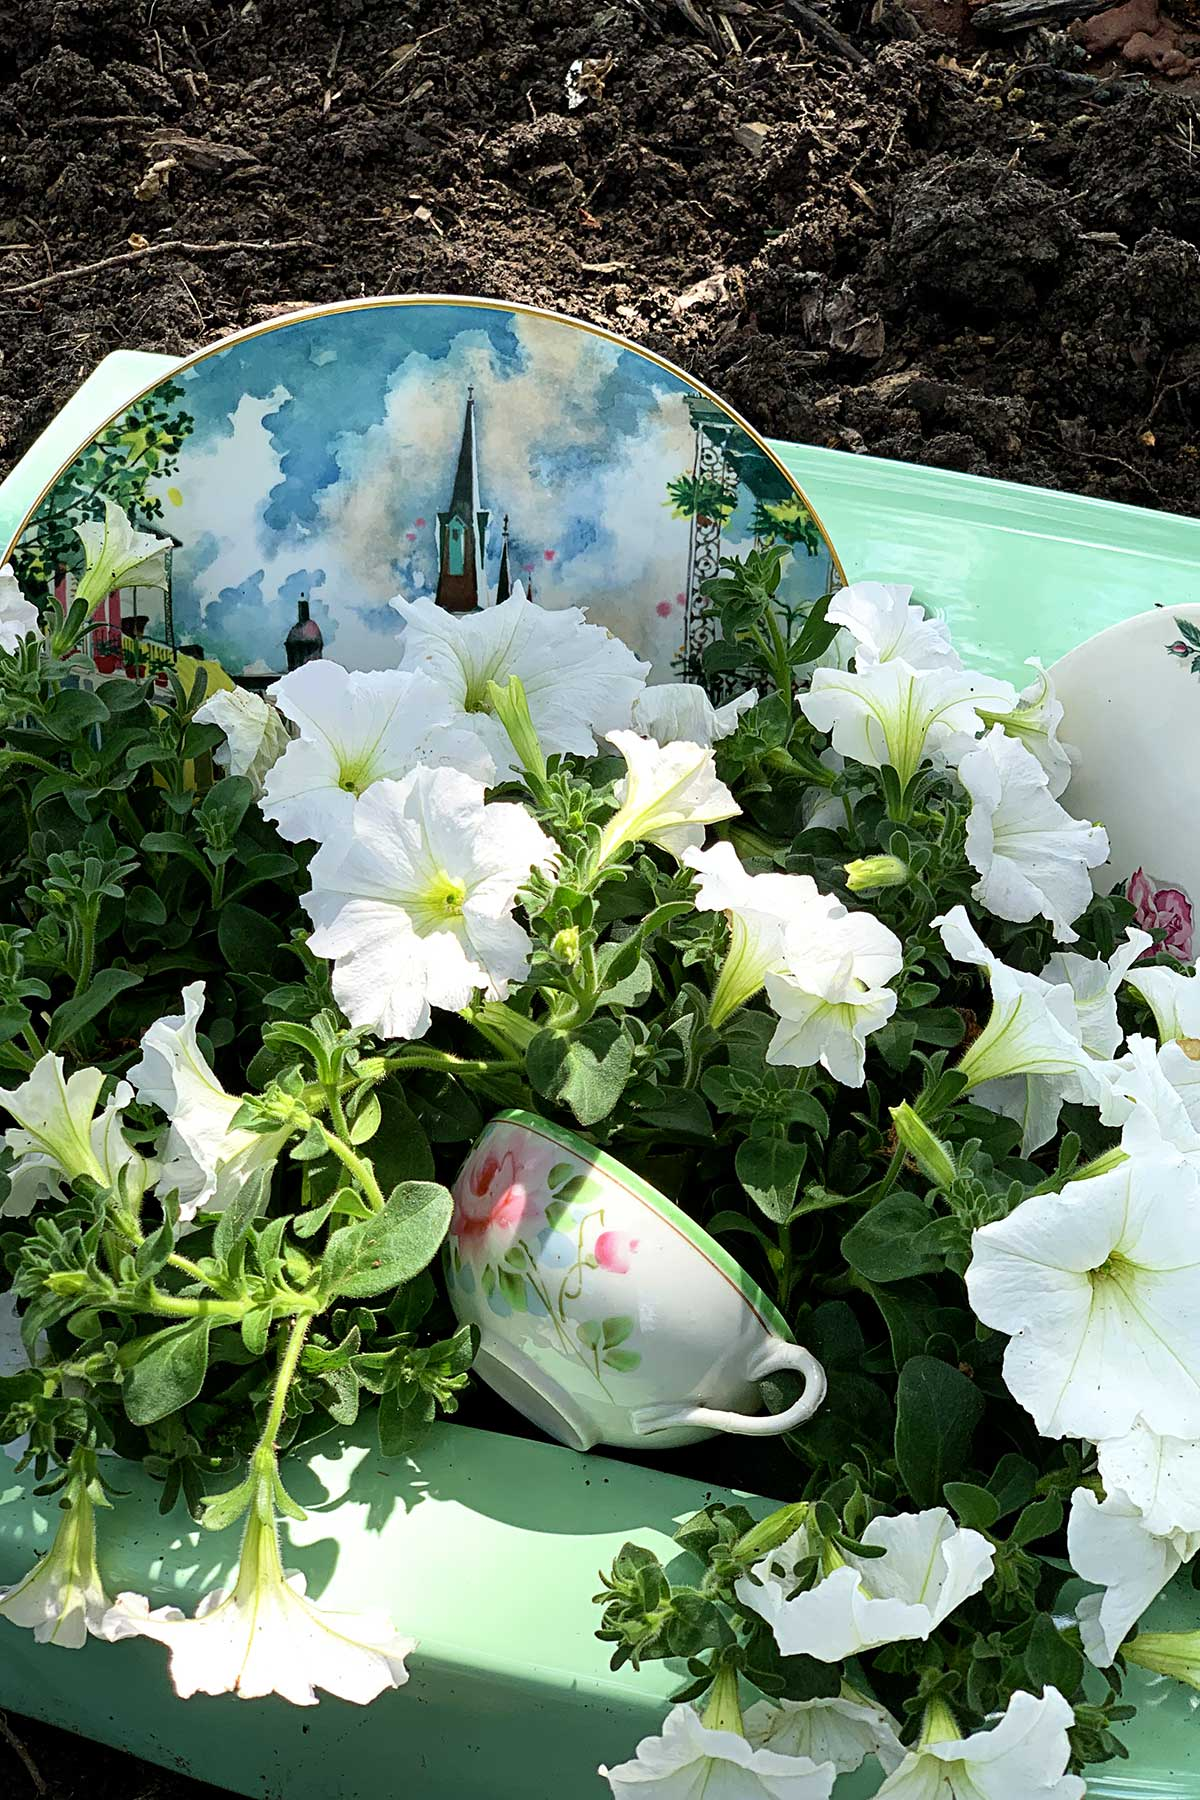 dishes and flower soap bubbles in repurposed sink turned into garden planter